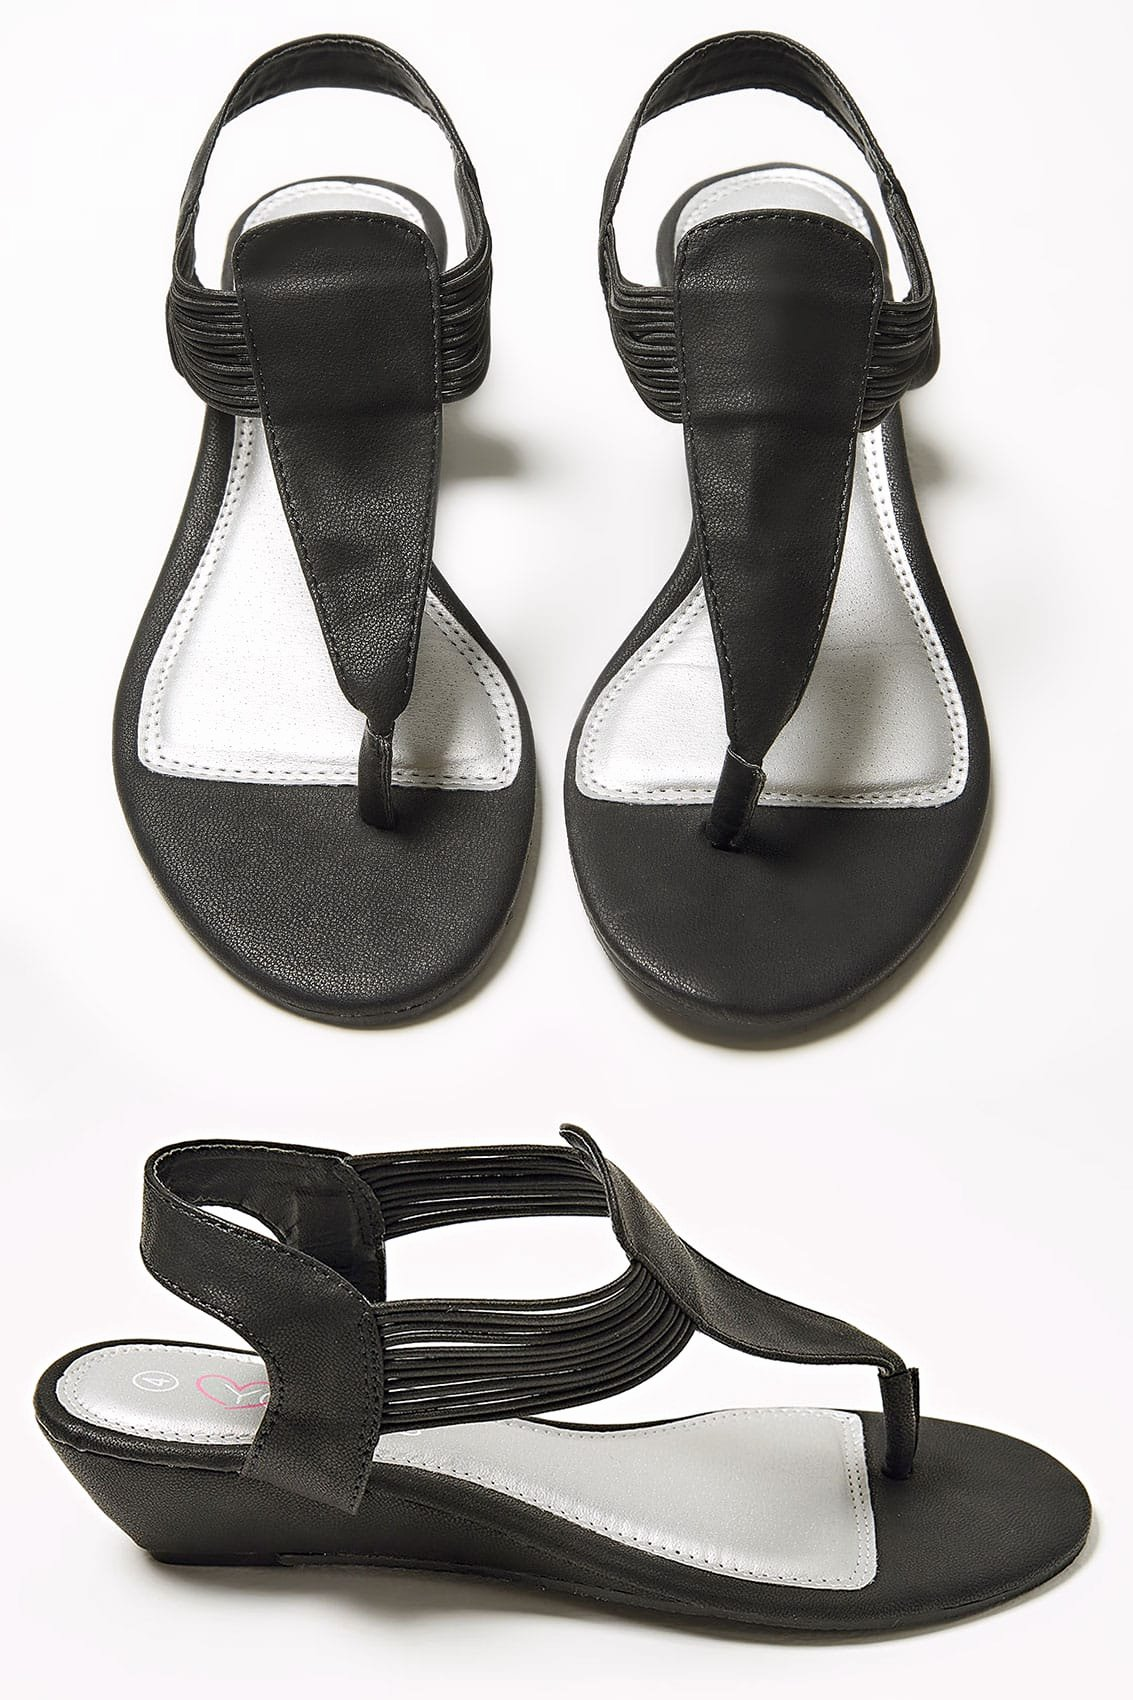 No Refunds Policy Template Luxury Black toe Post Wedge Sandal In Eee Fit